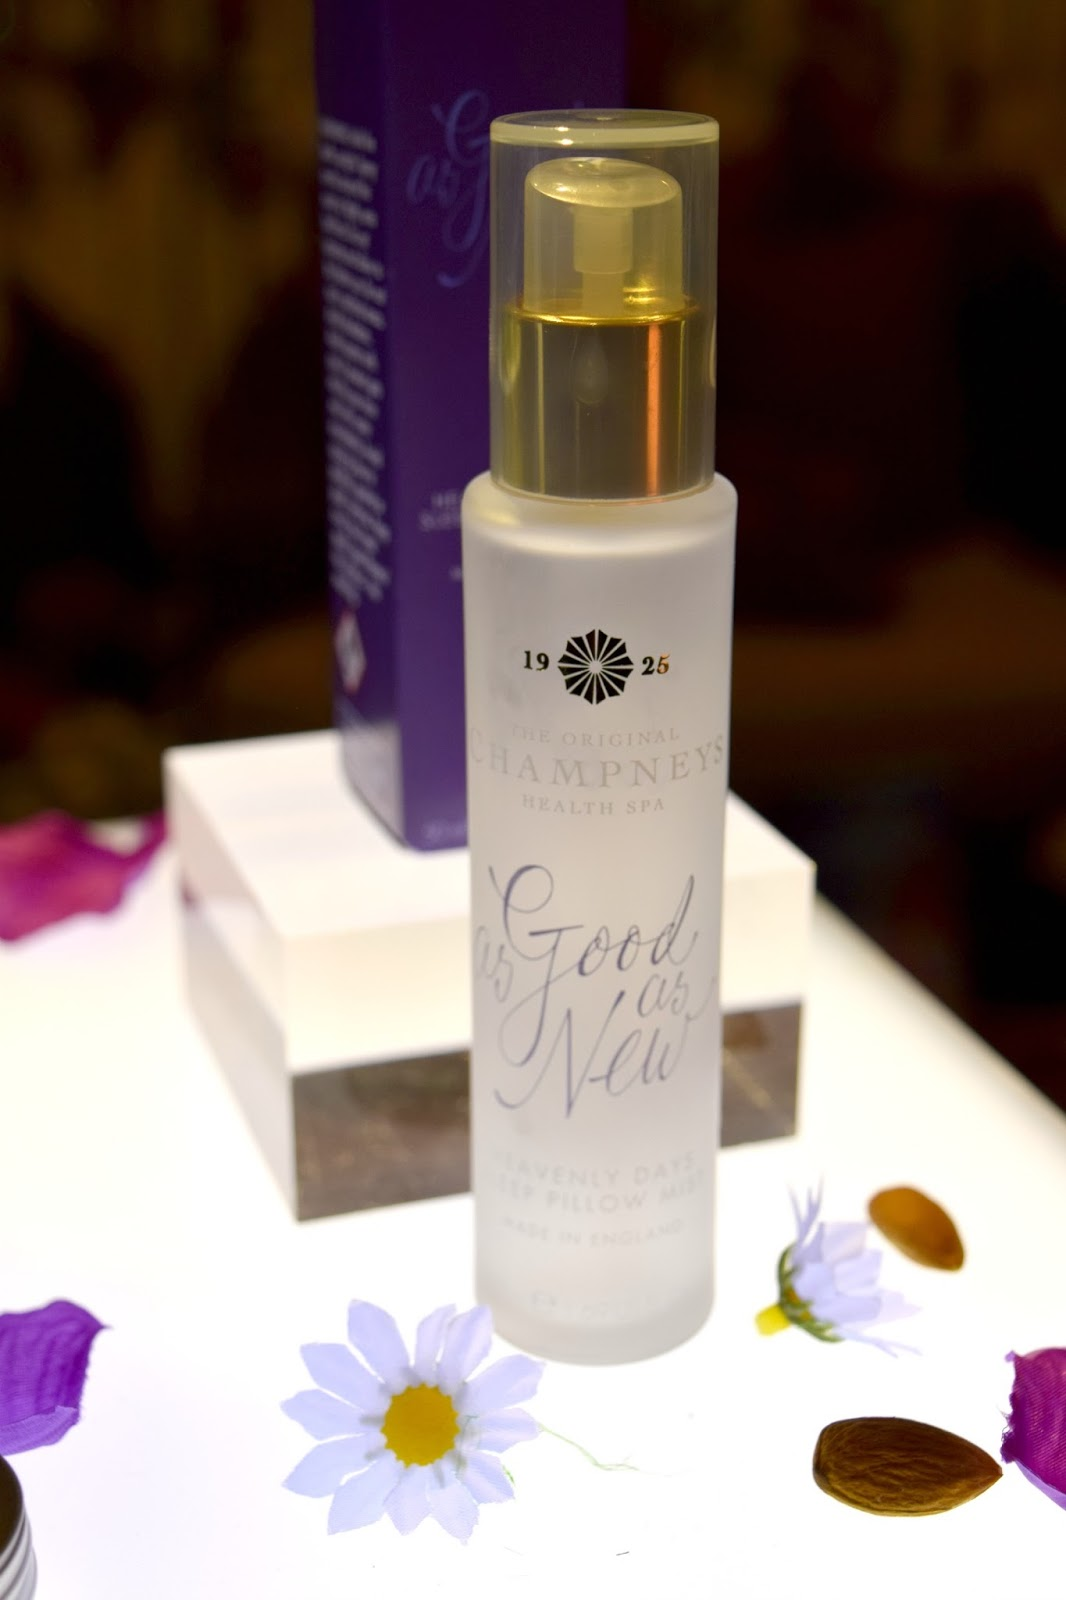 Champneys Pillow spray